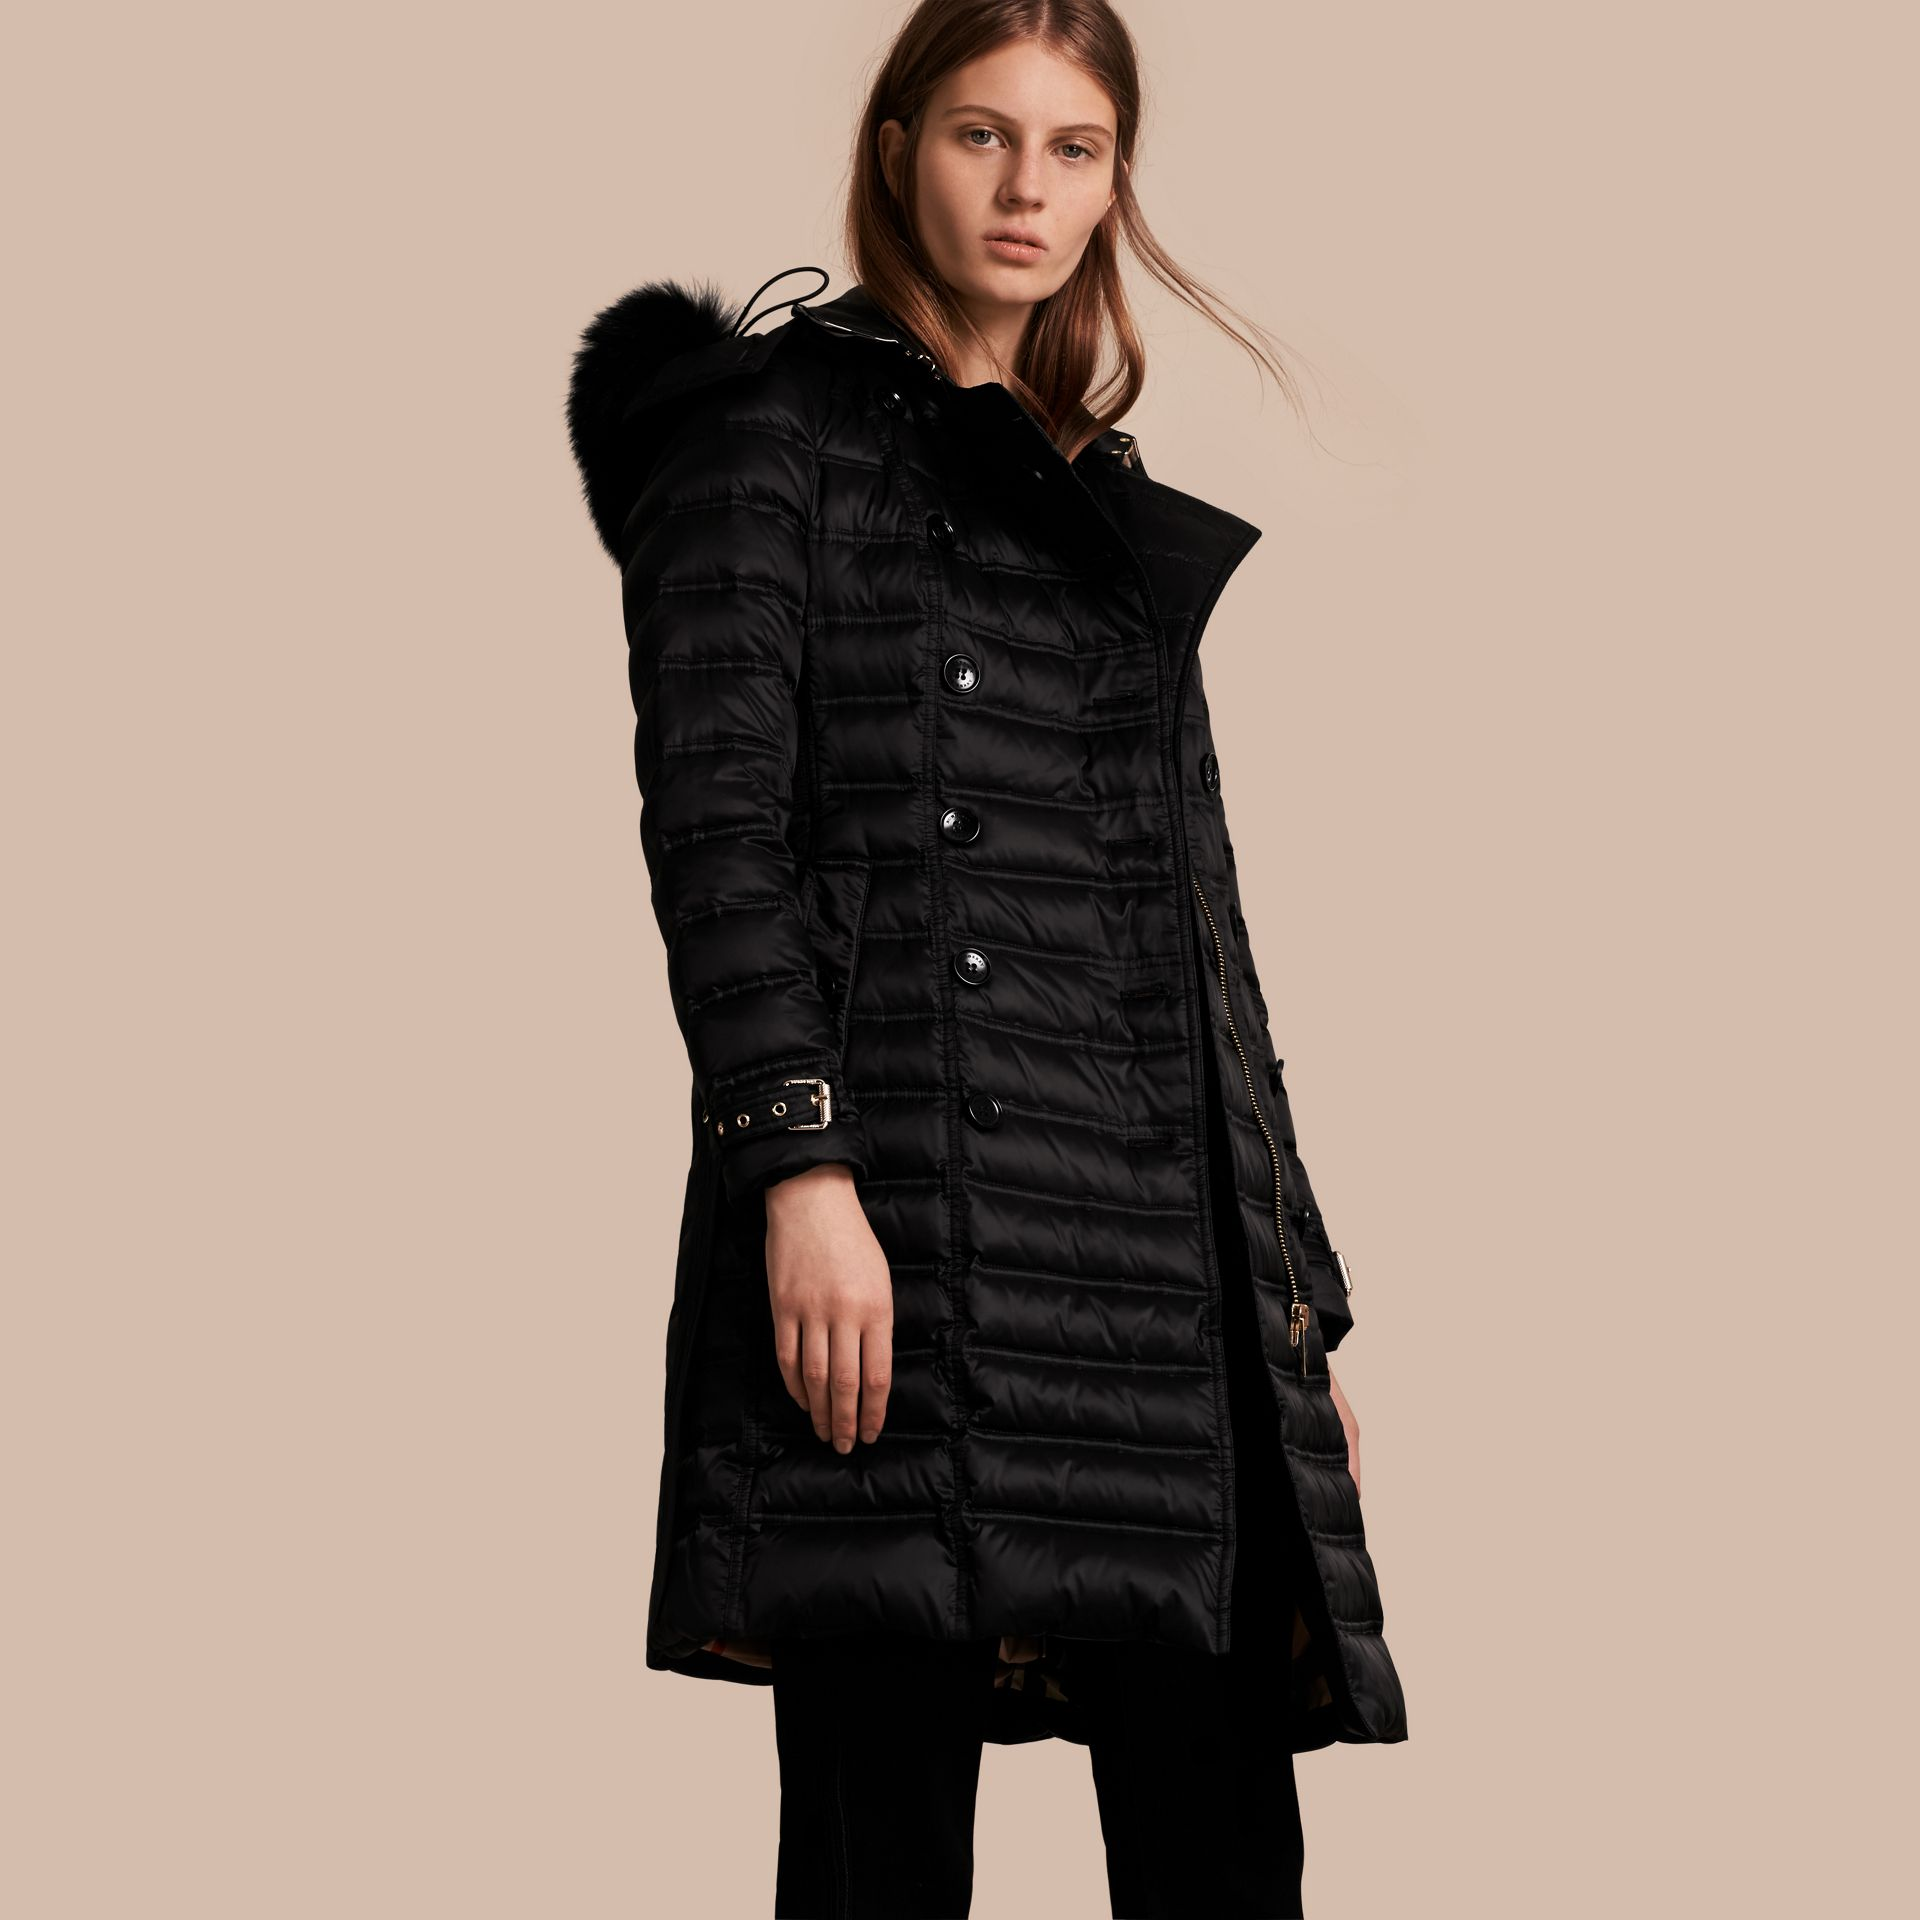 Black Down-Filled Puffer Coat with Fur Trim Black - gallery image 1